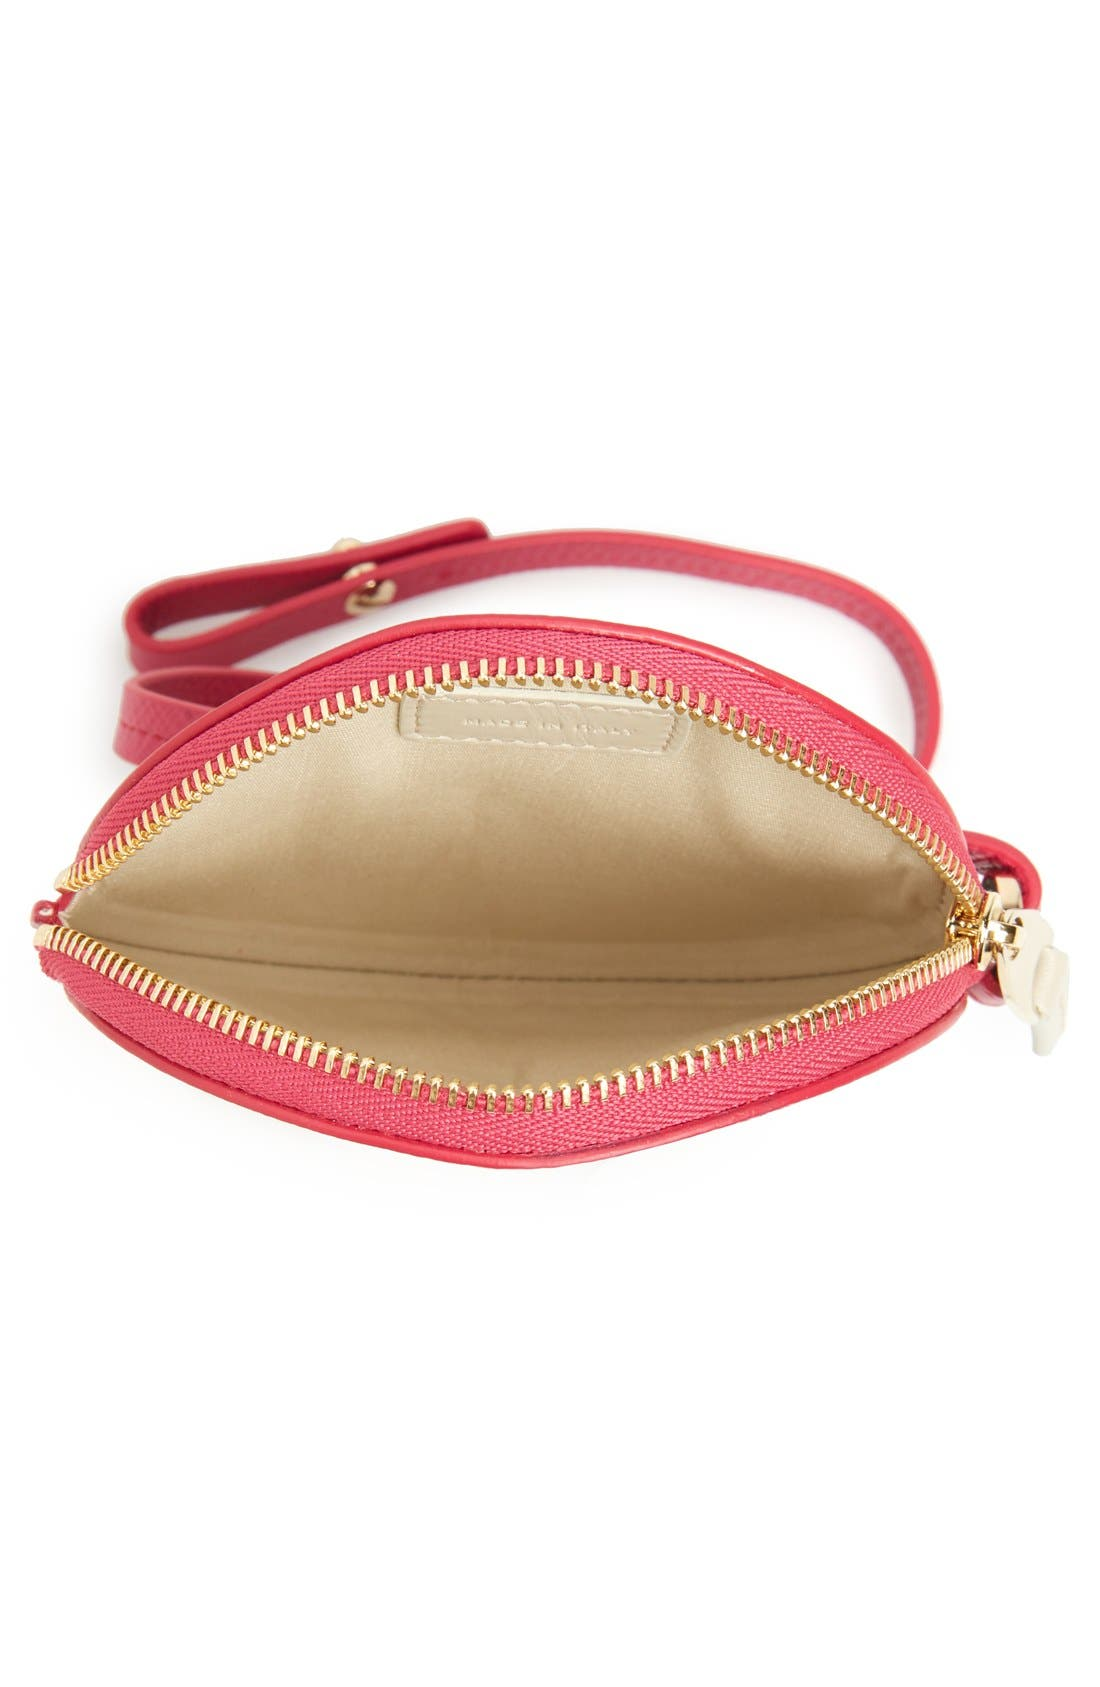 Circle Leather Coin Purse,                             Alternate thumbnail 3, color,                             Fuchsia